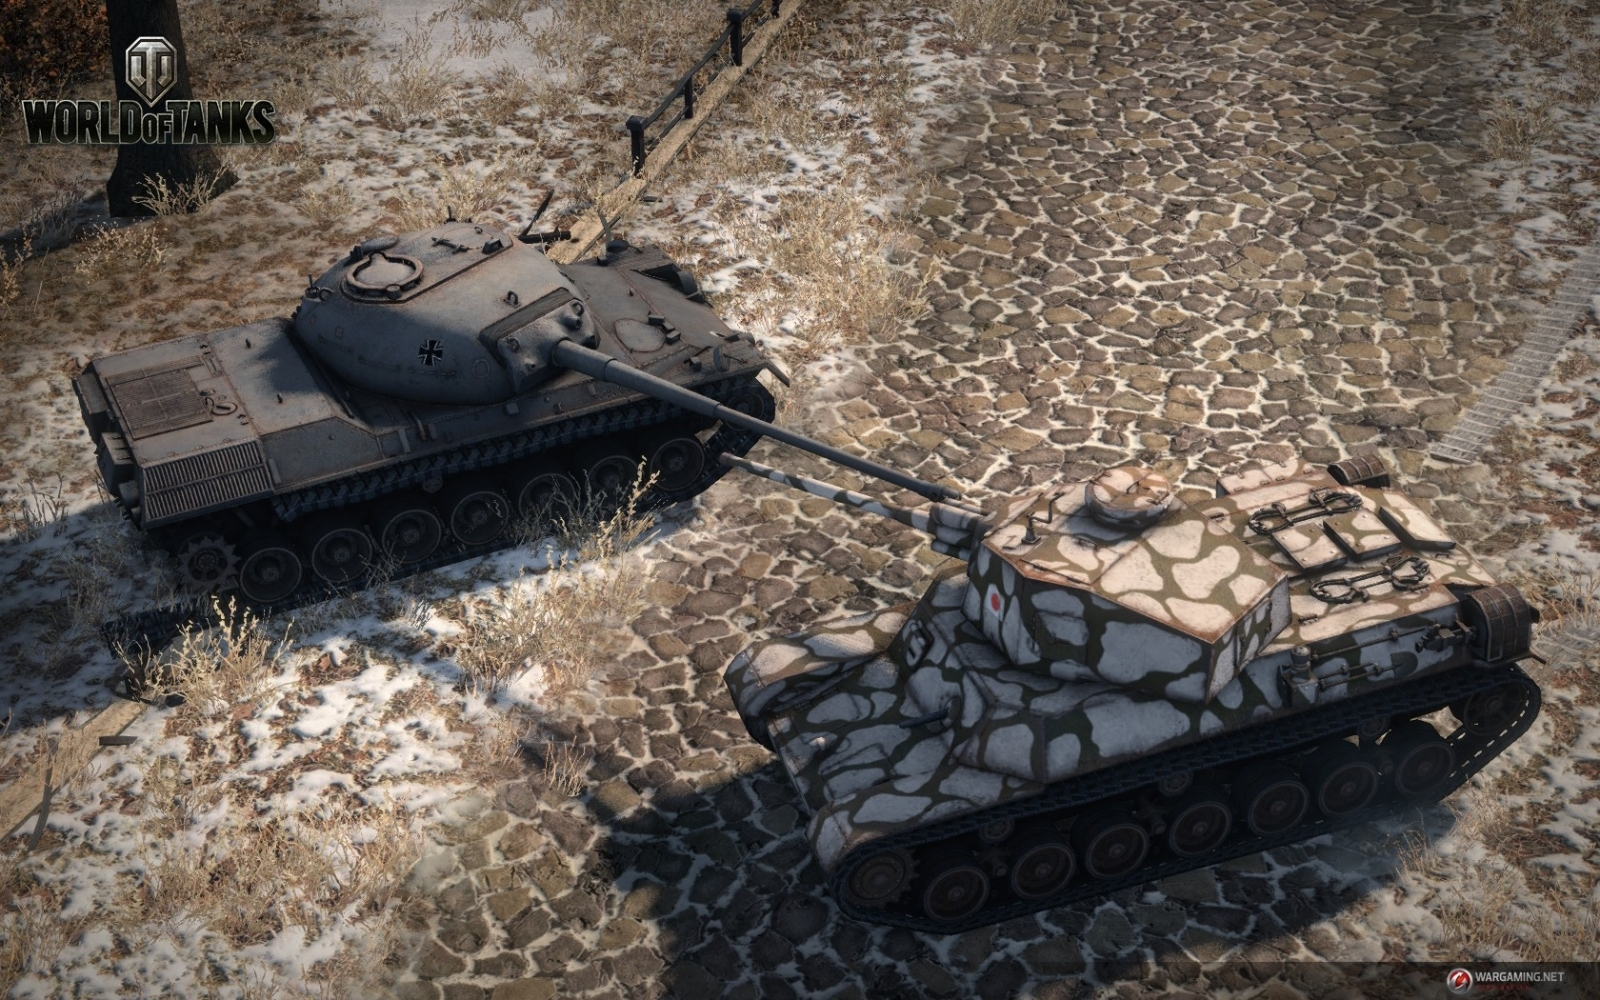 Is Kim Jong-un on World of Tanks? The internet habits of